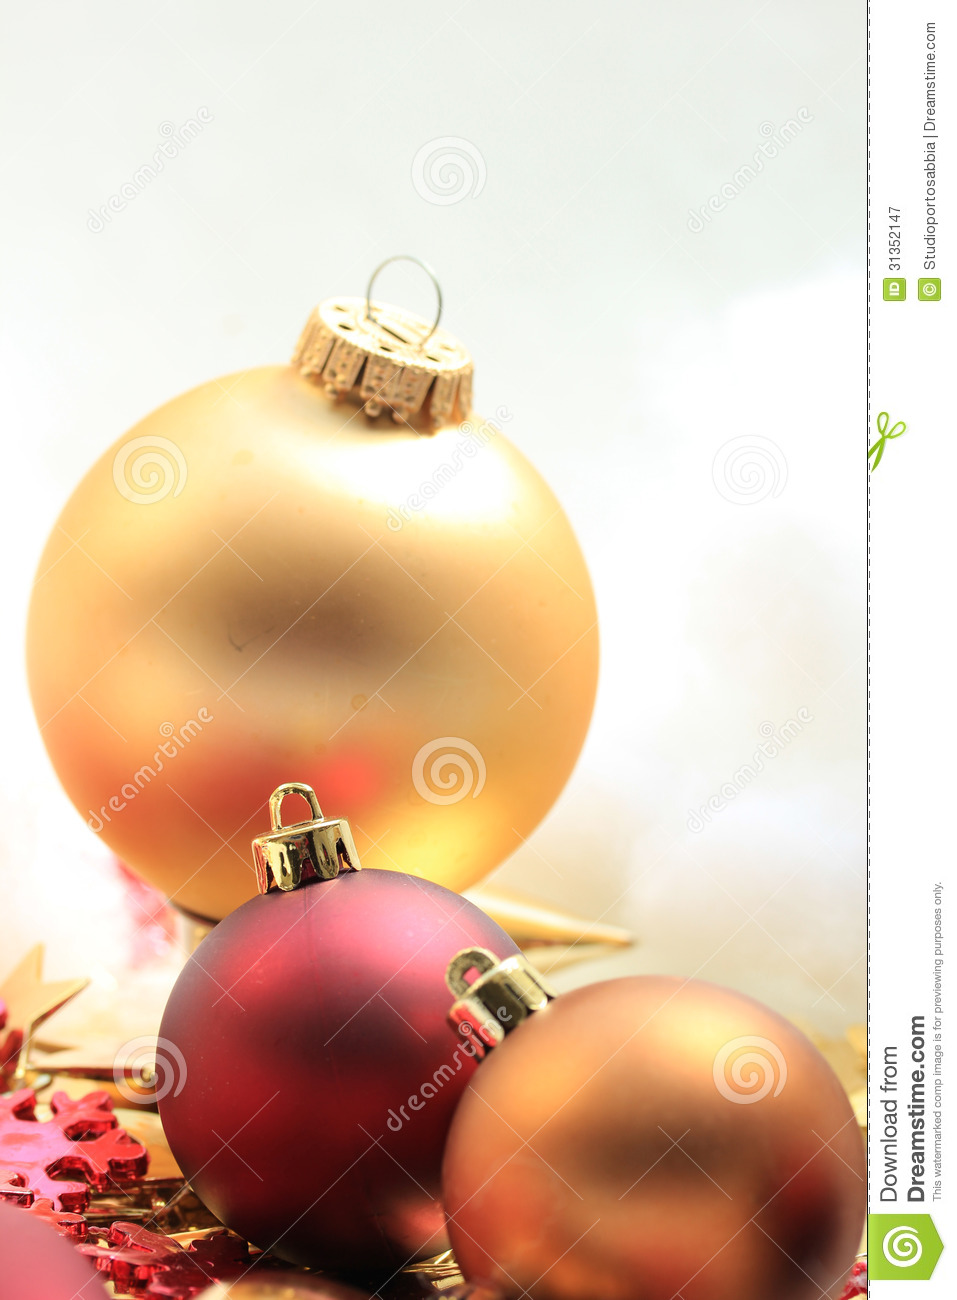 Christmas Ornaments Red And Gold : Christmas decorations in red and gold royalty free stock